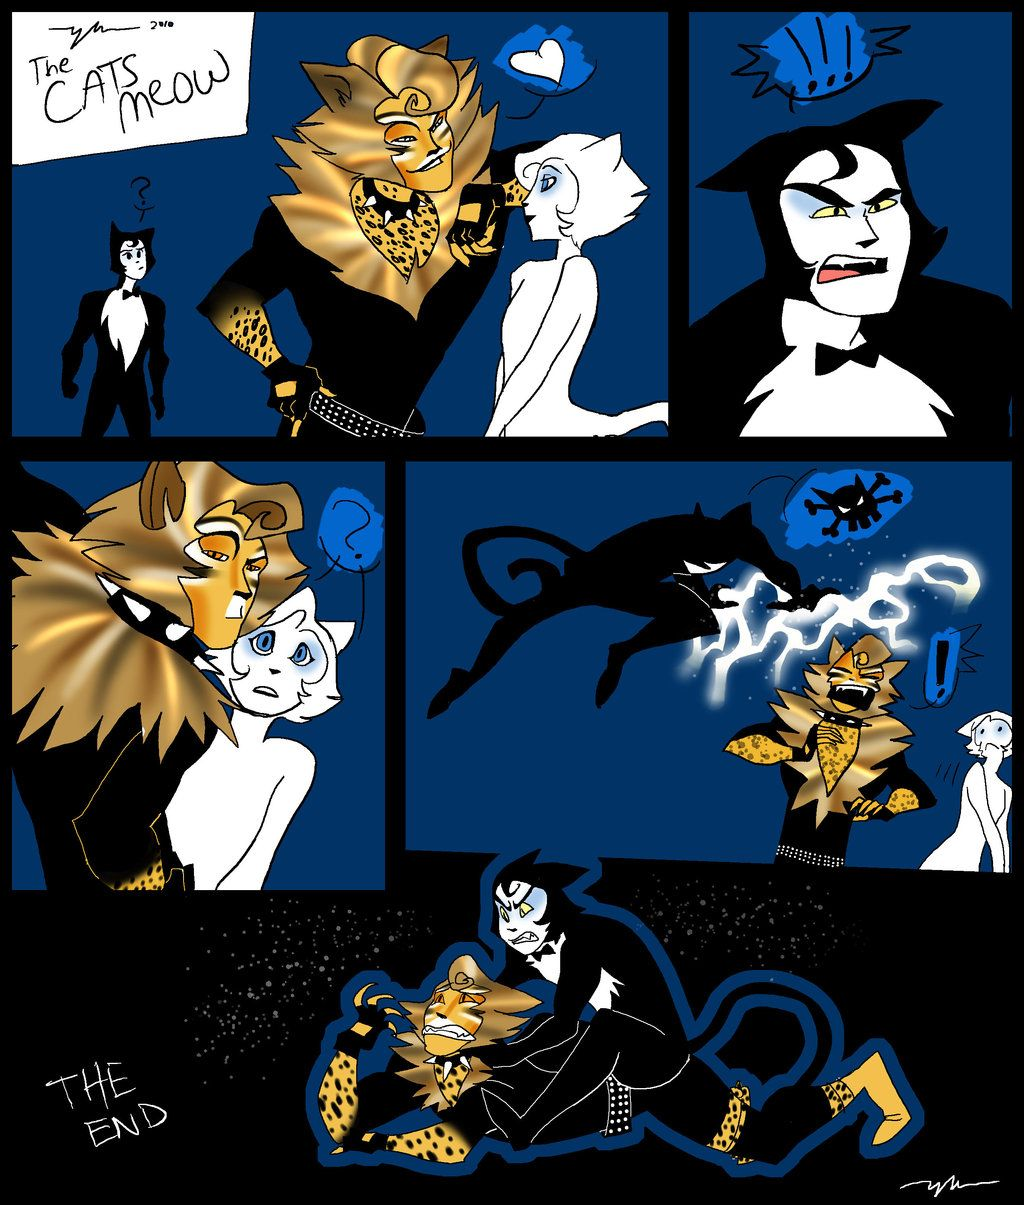 The Rum Tum Tugger is by on